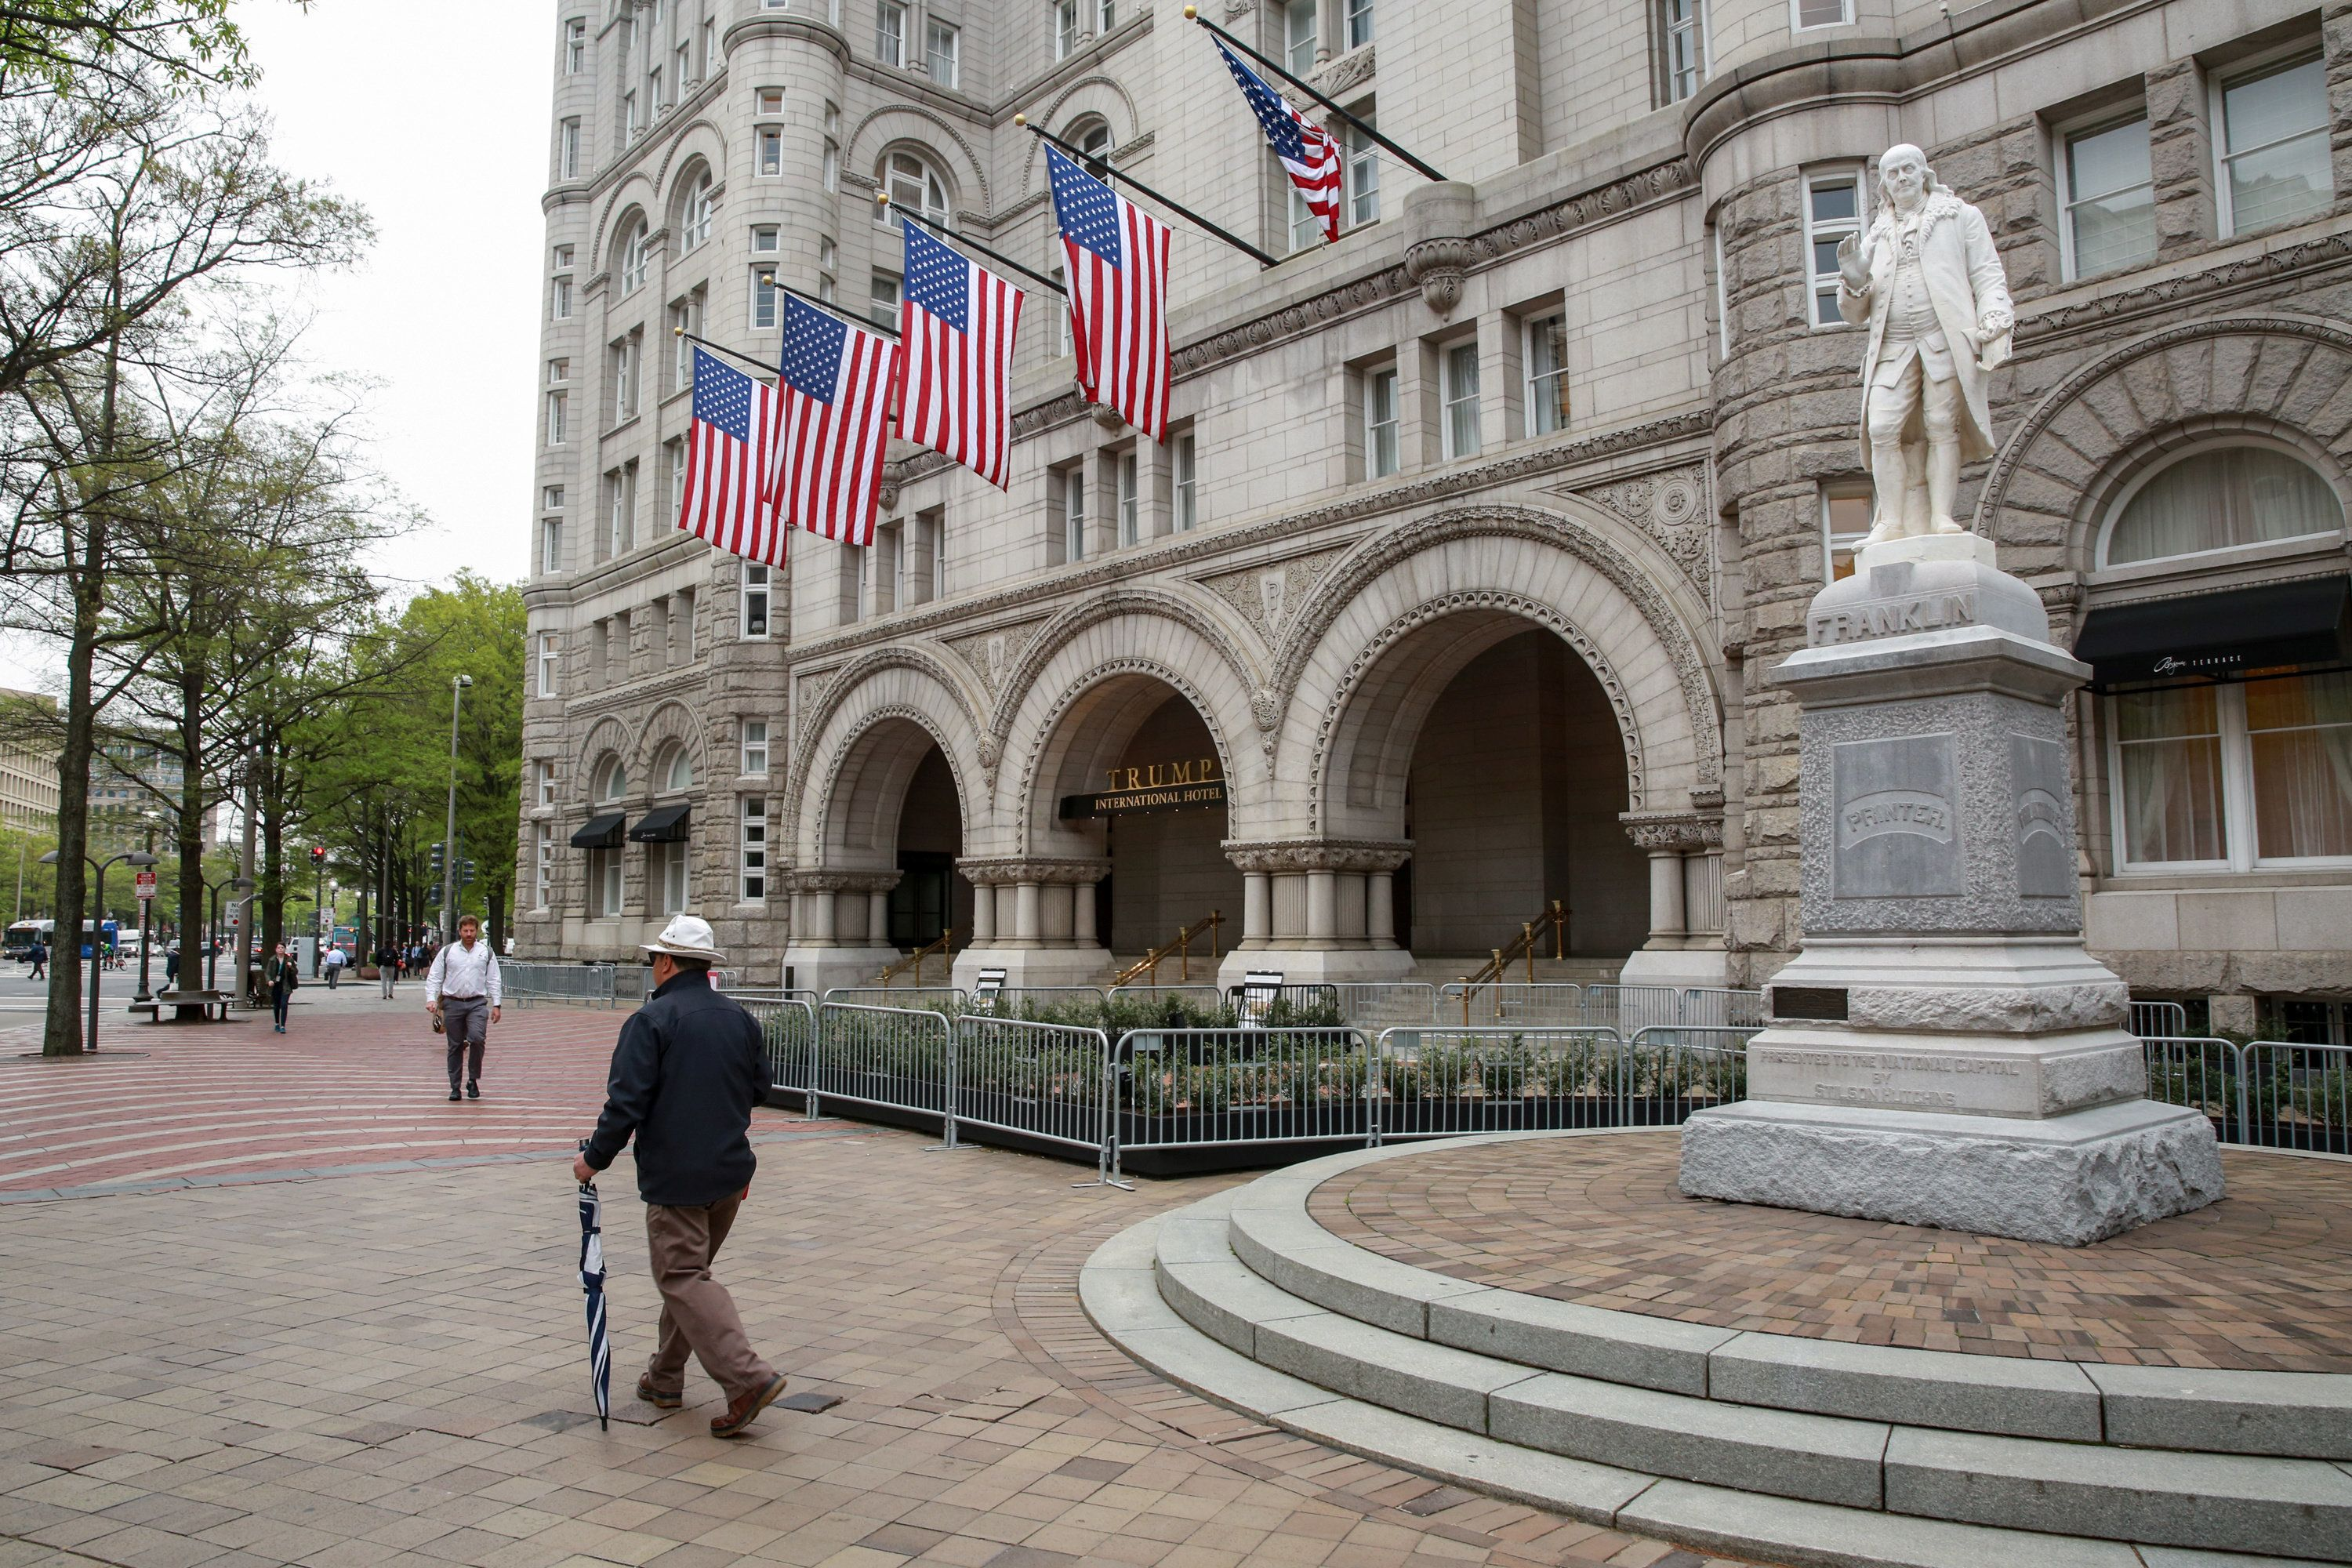 A general view of the Trump International Hotel seen ahead of the release of the Special Counsel Robert Mueller's report in Washington, U.S., April 18, 2019. REUTERS/Amr Alfiky